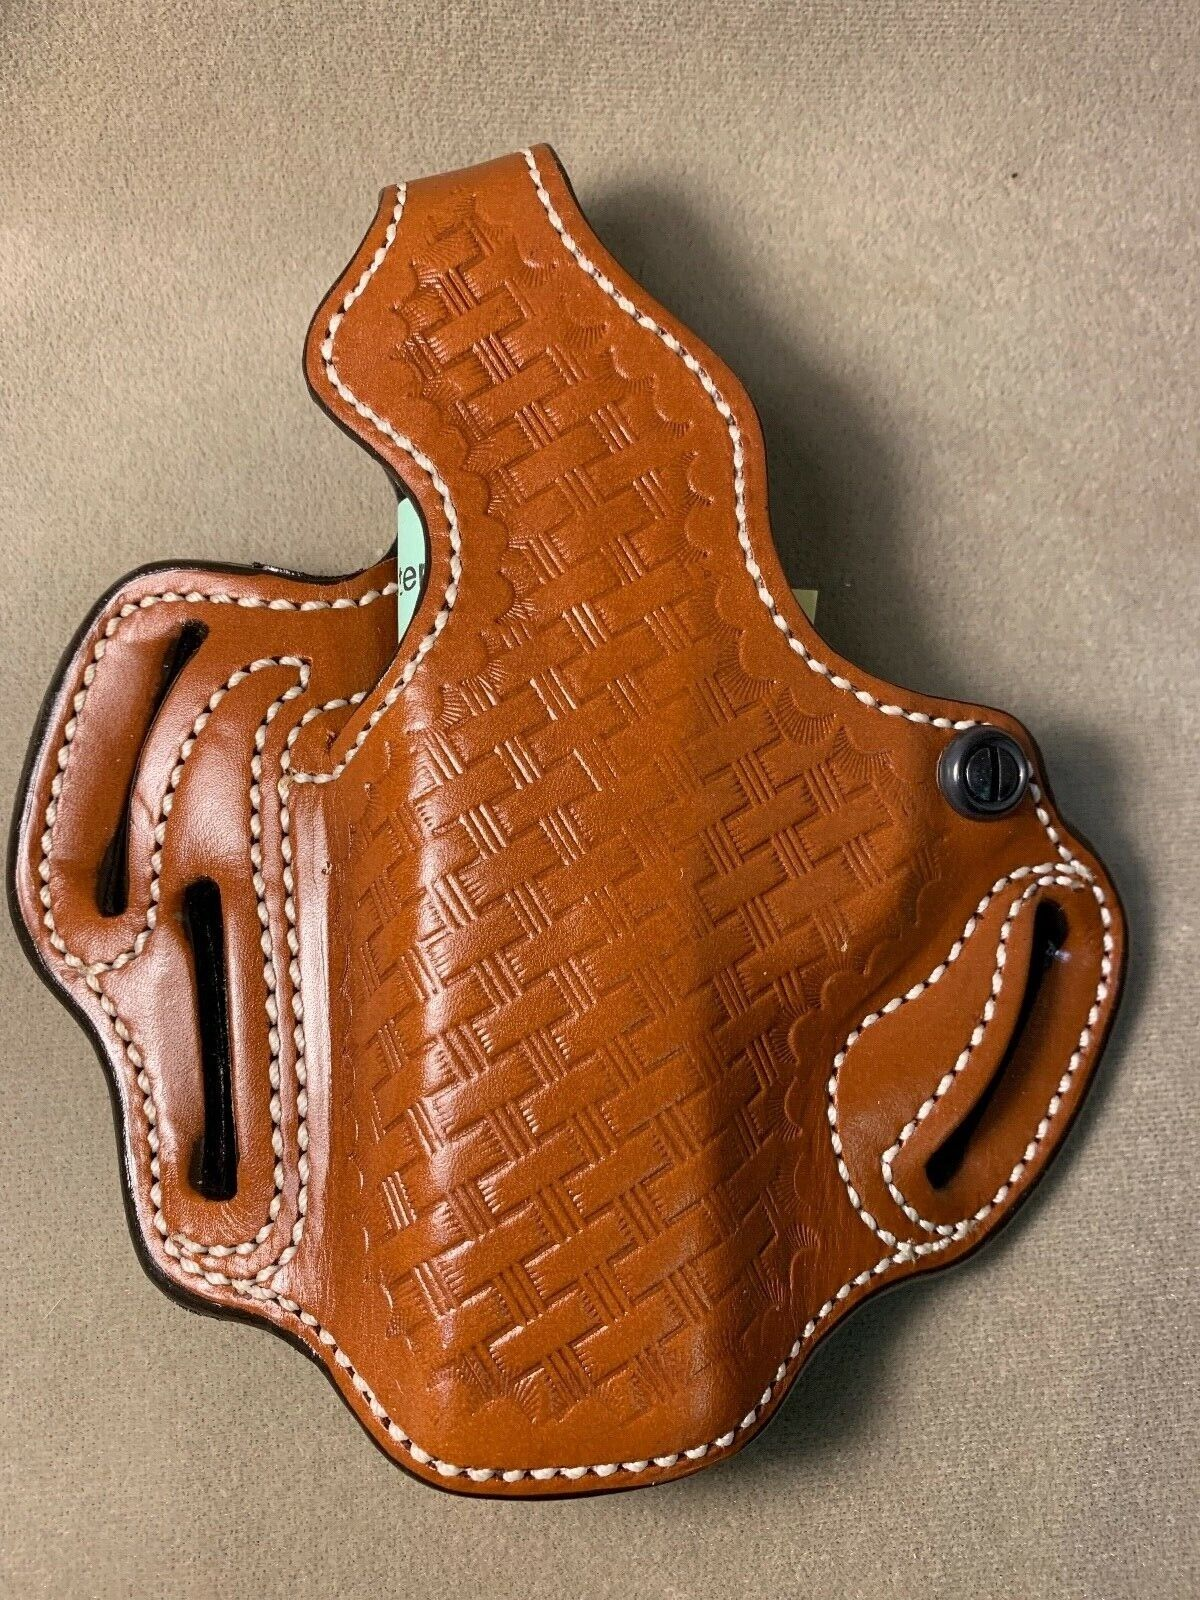 DeSantis Thumb Break Lined Holster - LH Tan For S&W Sigma CPT 9 40 9G 40G